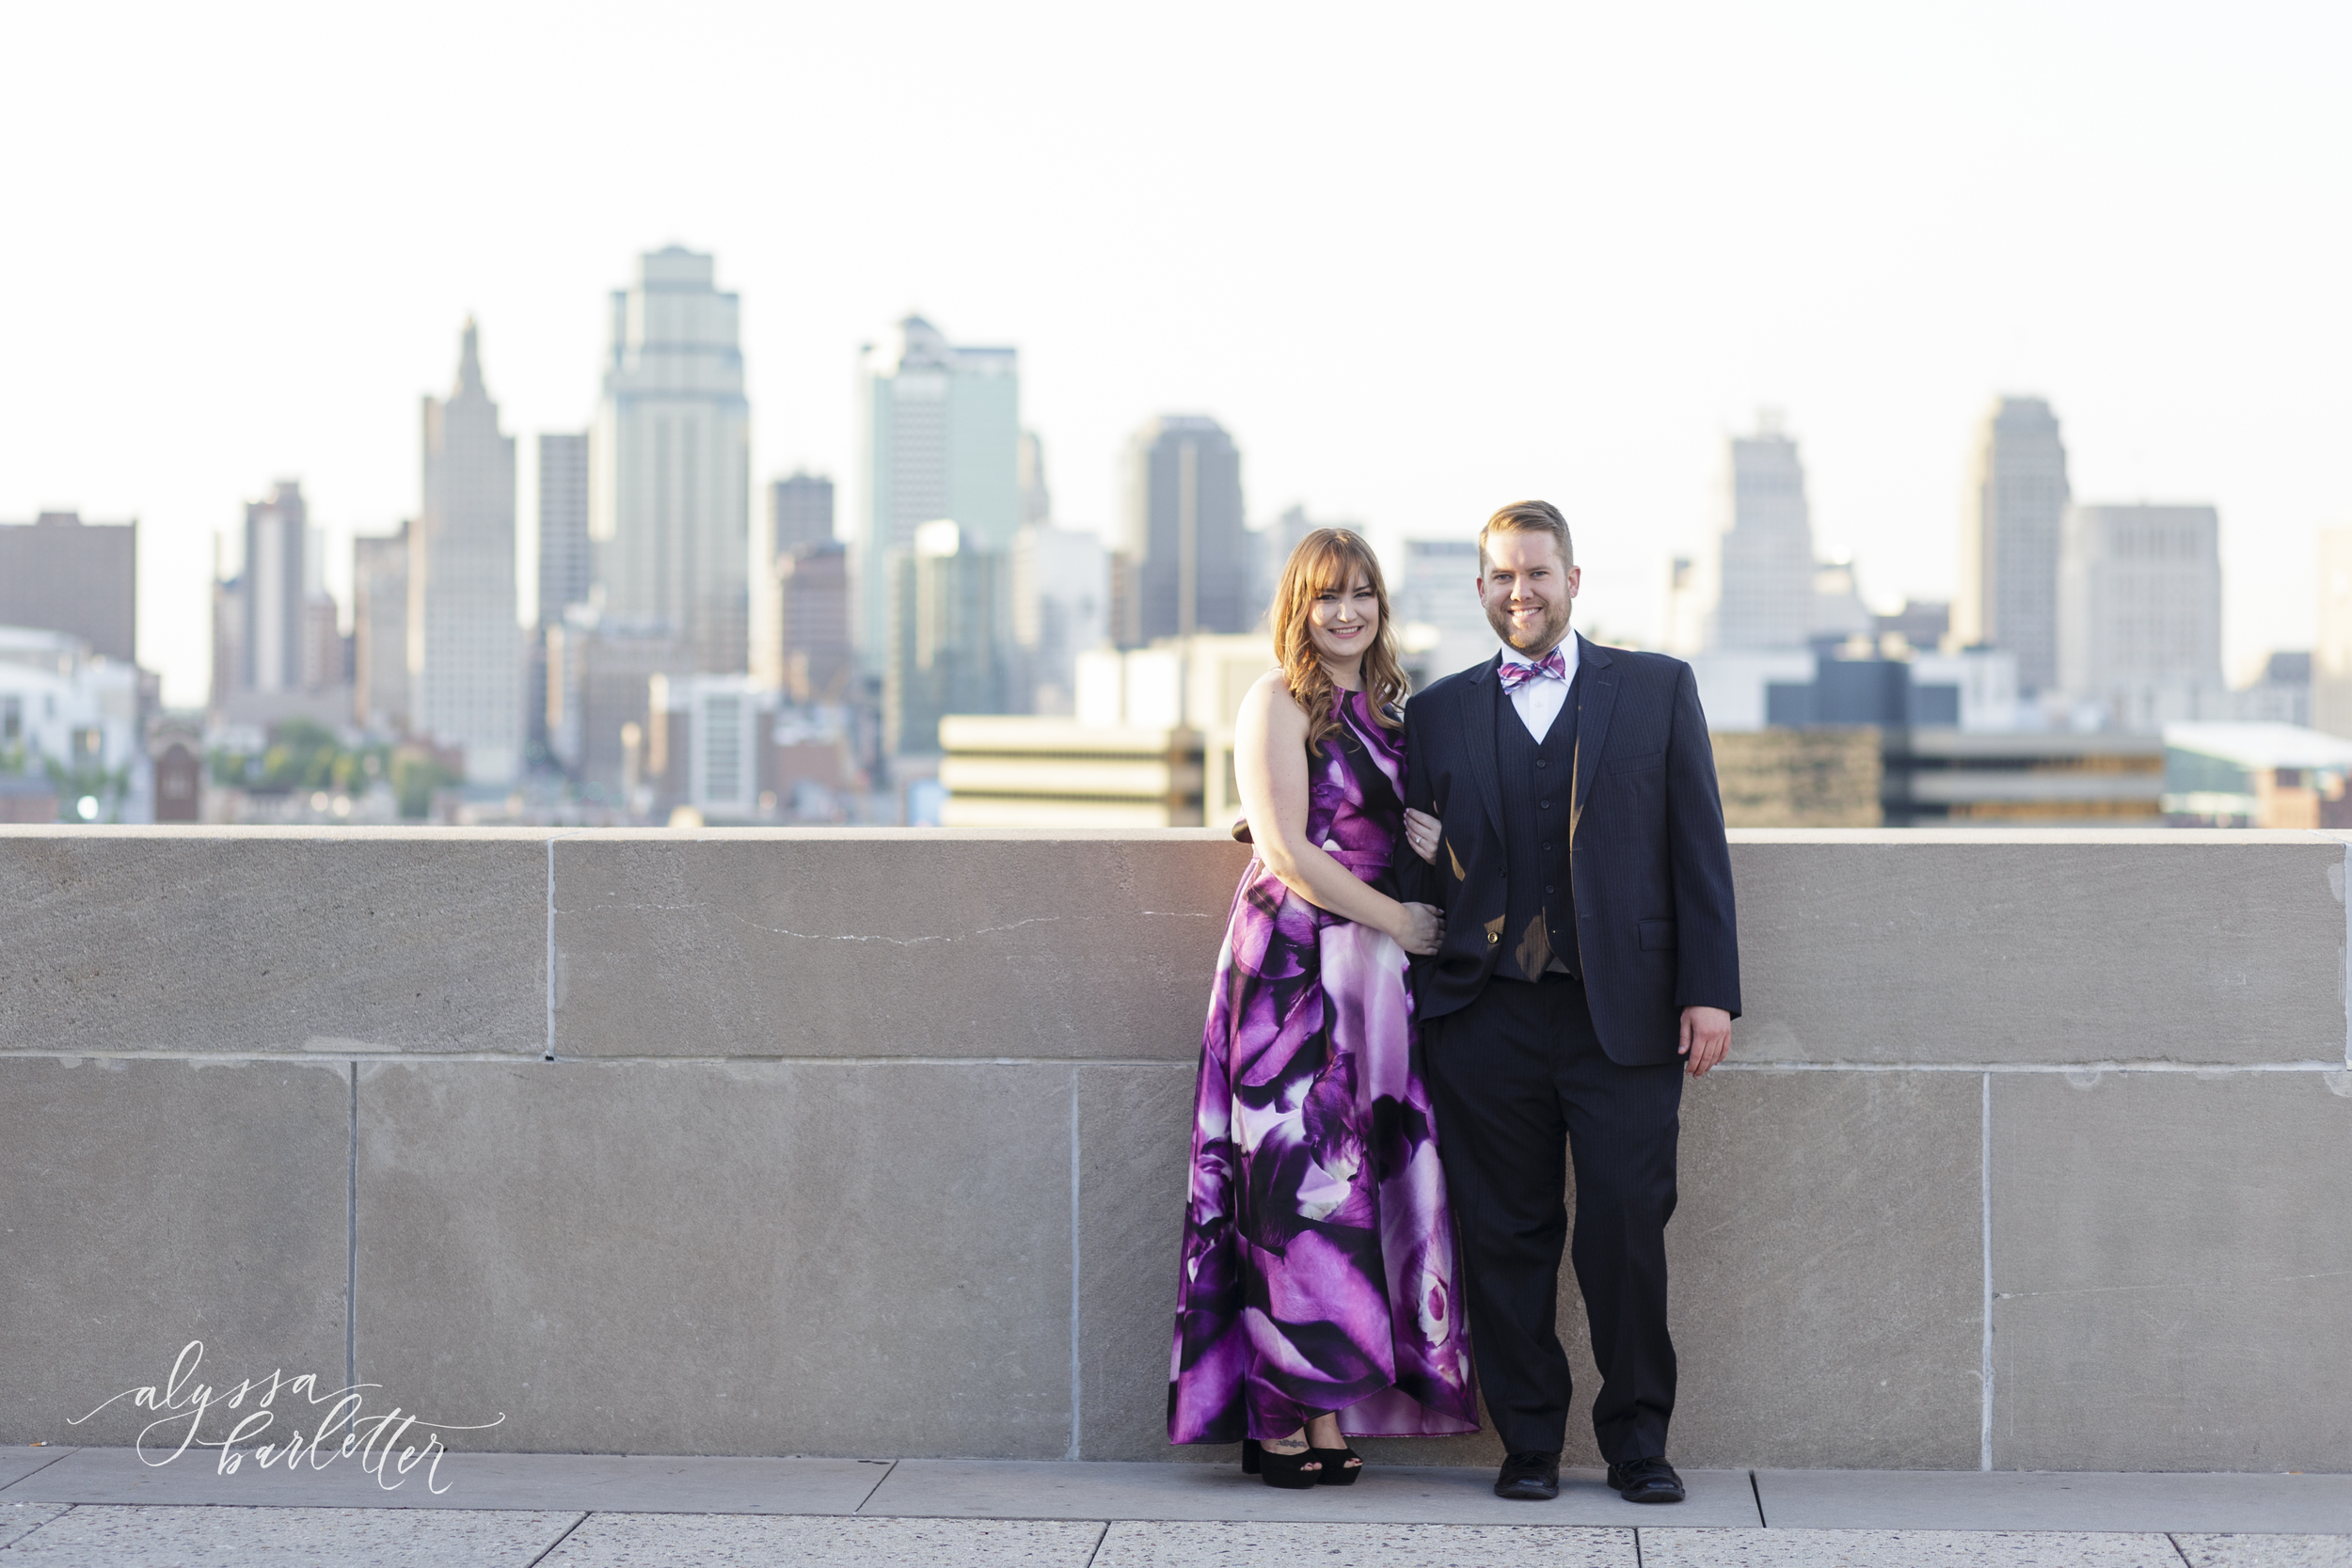 downtown kansas city engagement photography jennie and dave-7.jpg